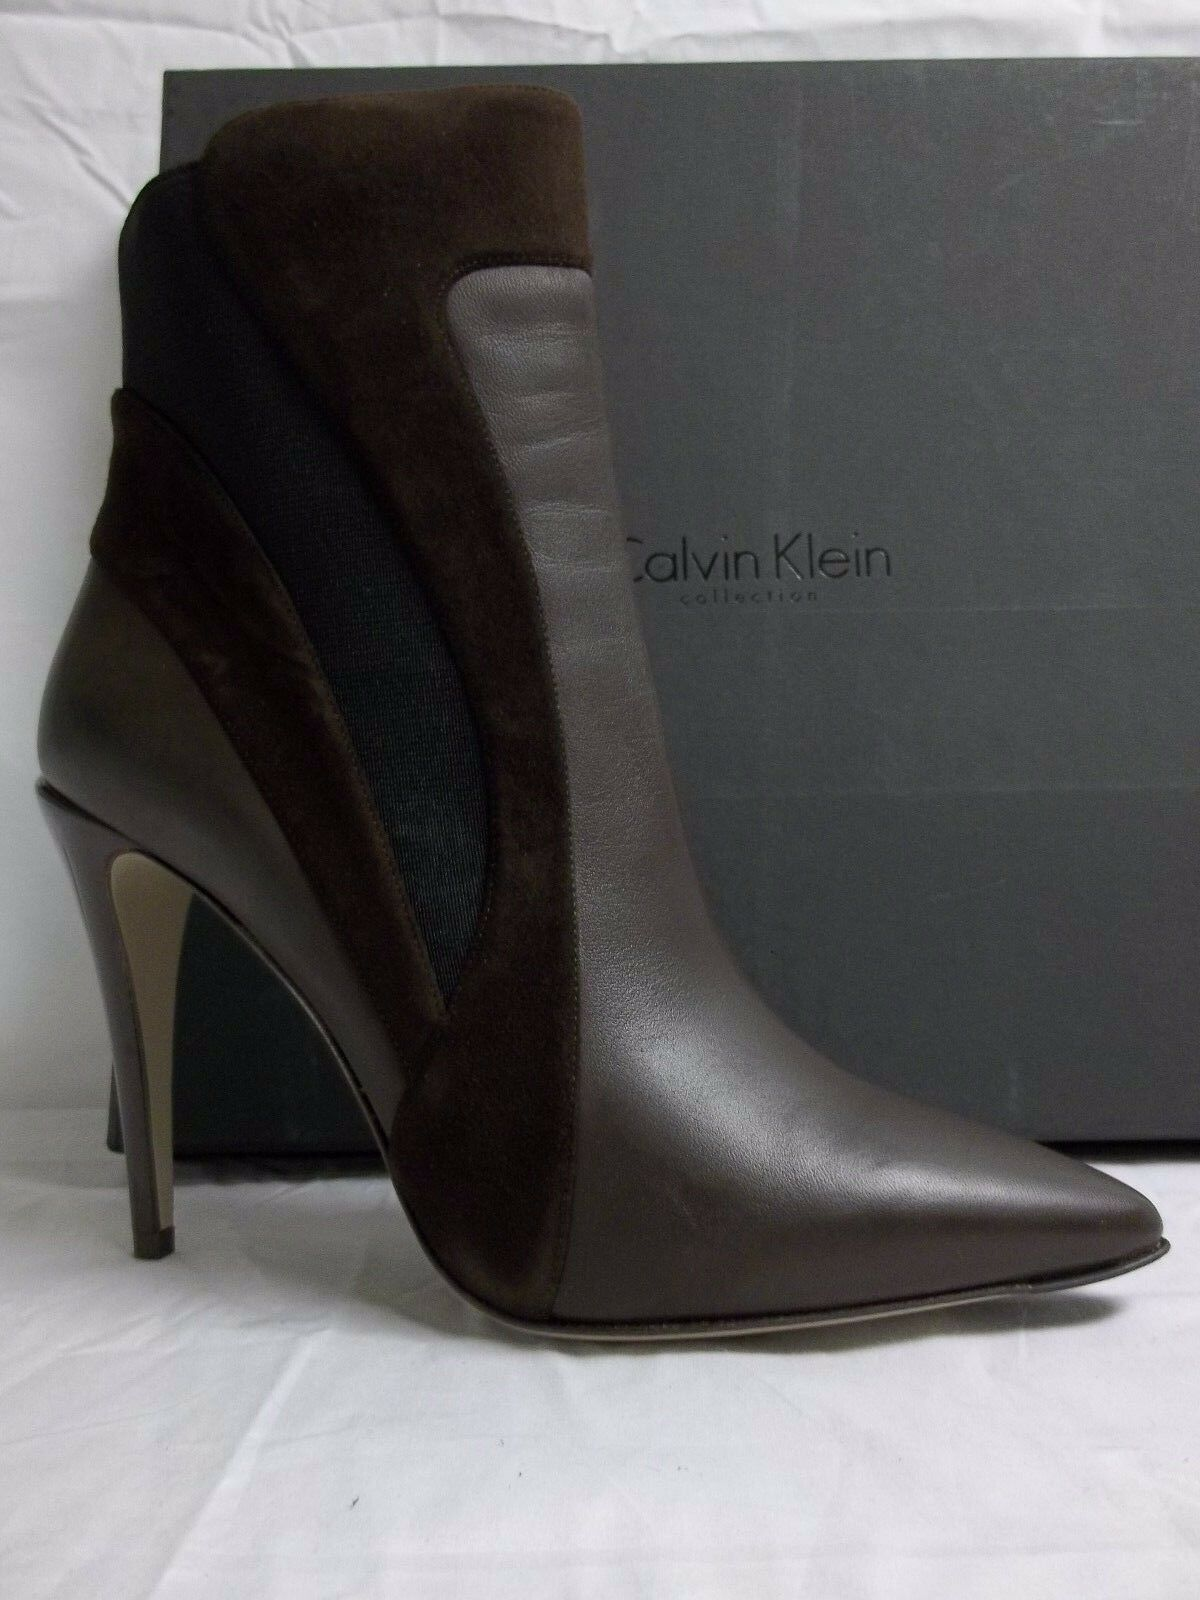 Calvin Klein Collection Size US 9.5 Ilana Brown Suede Booties New Womens